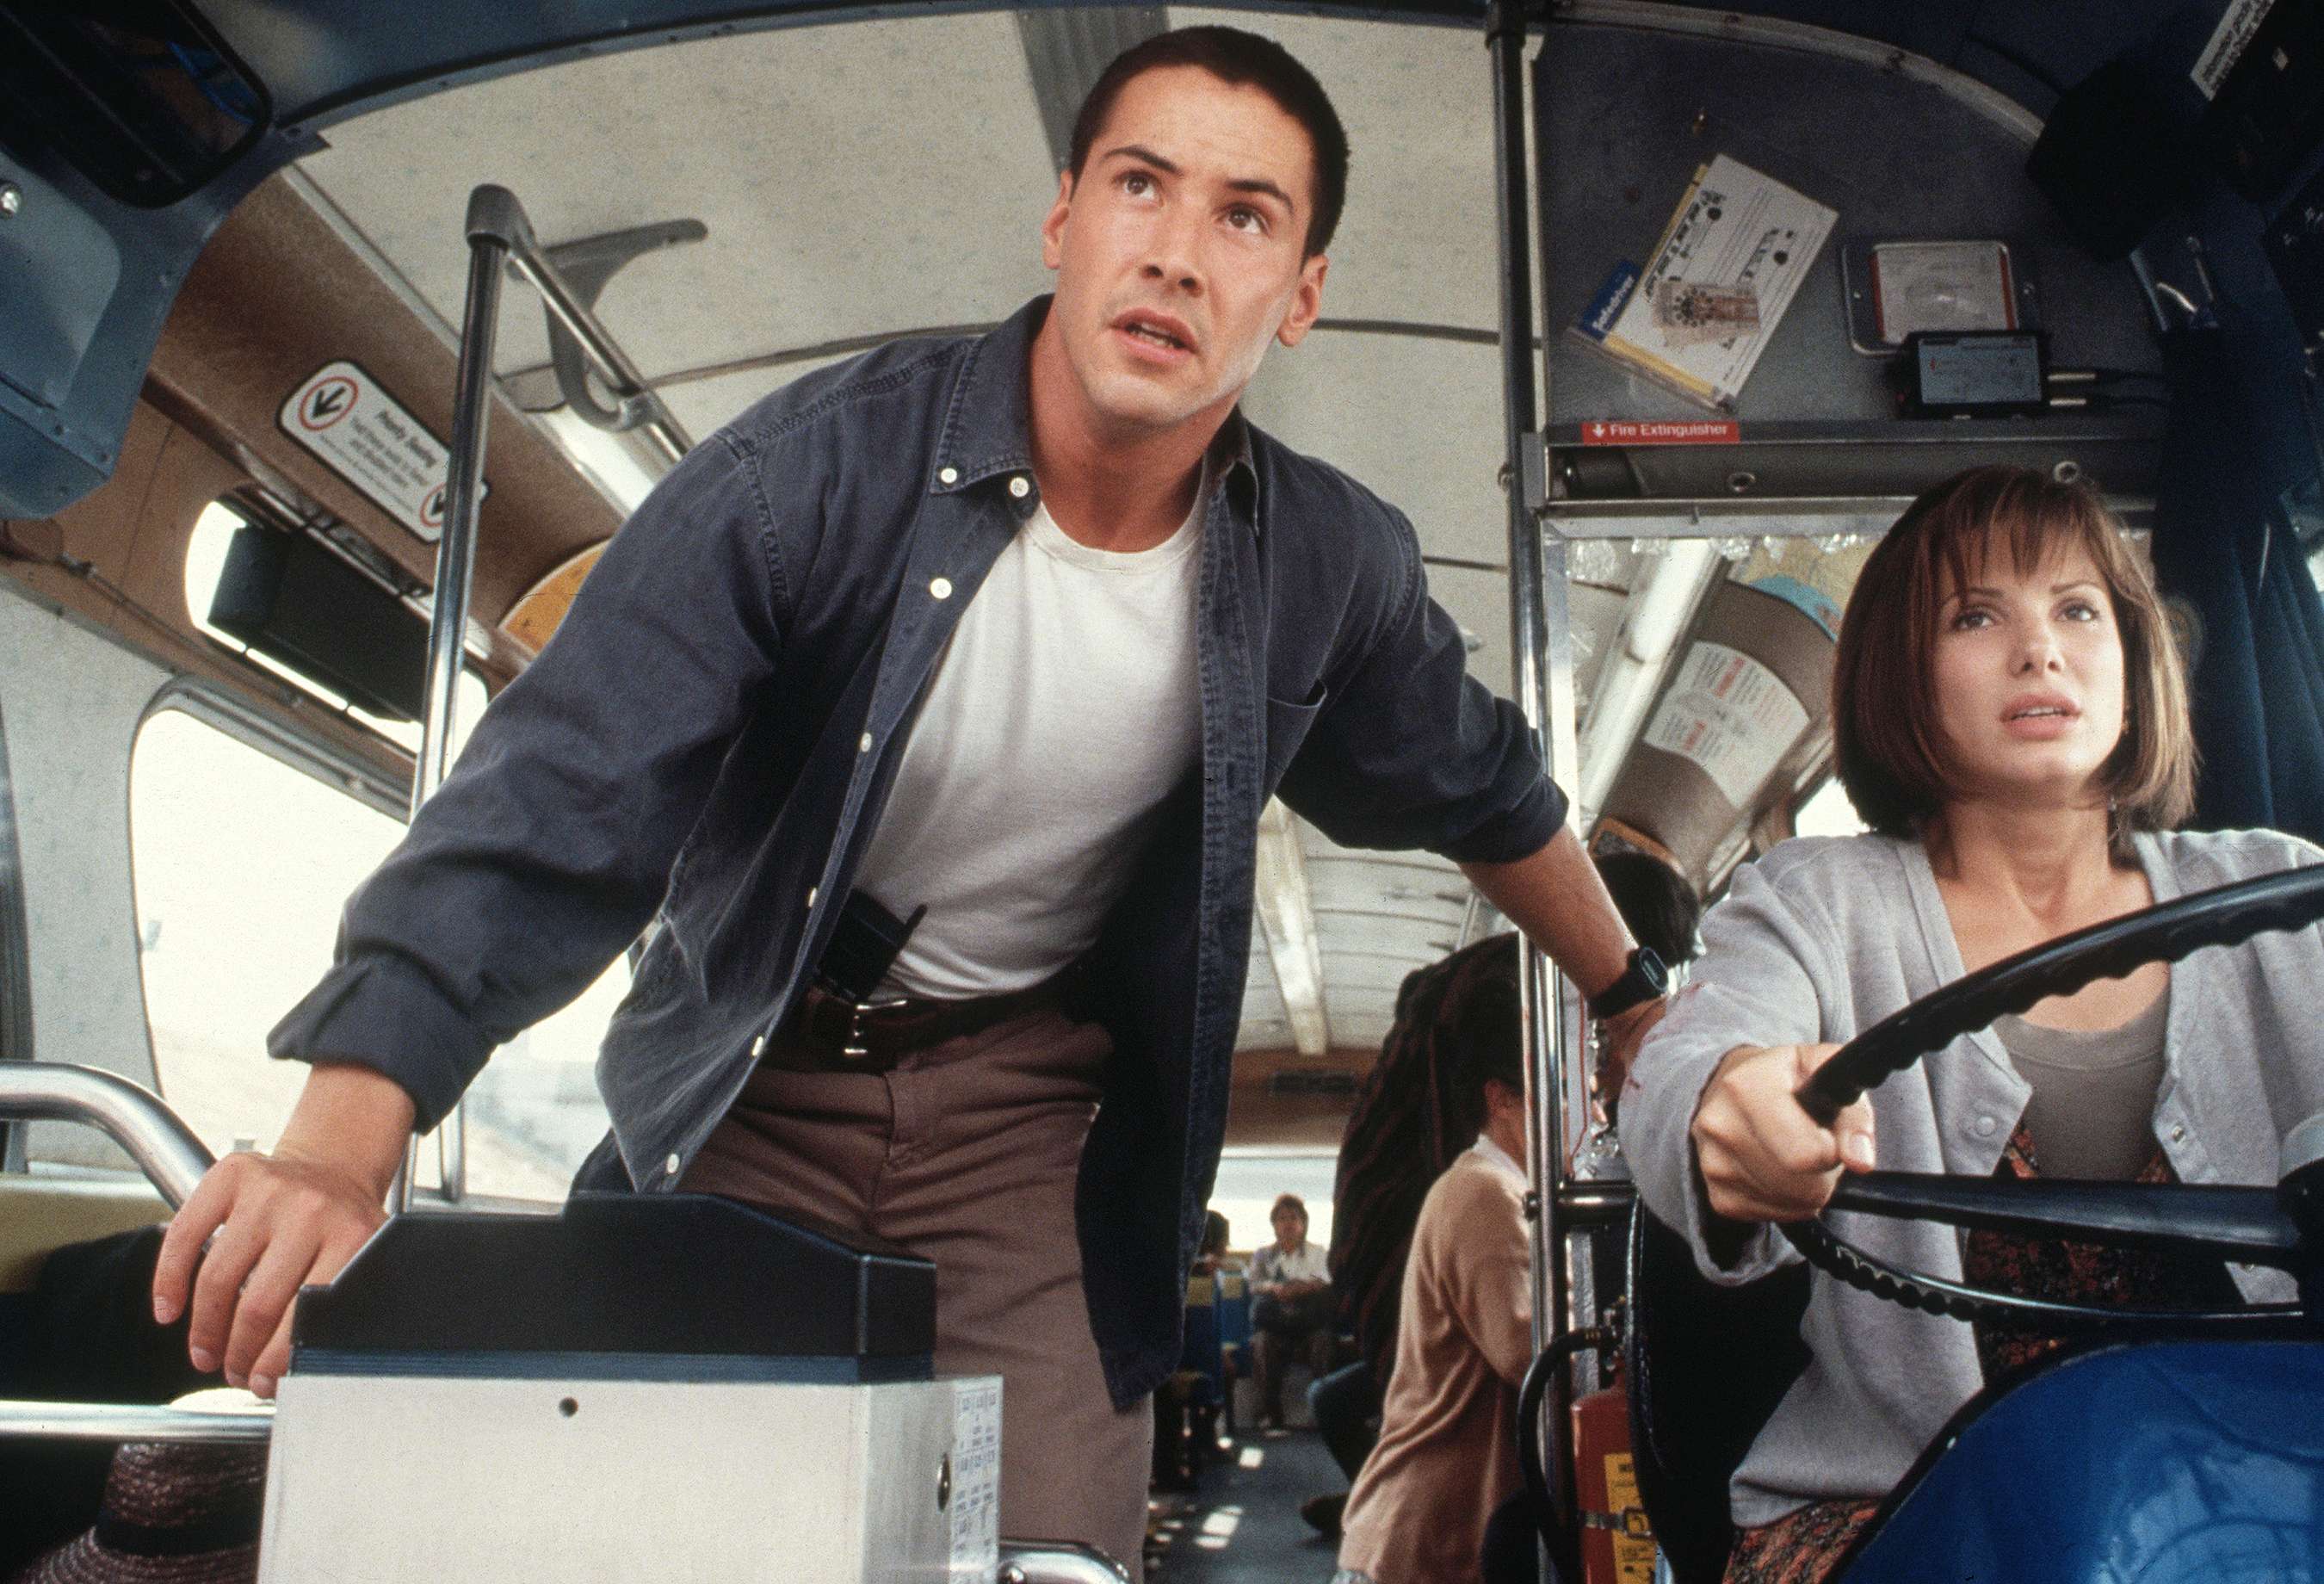 Reeves and Bullock in Speed. Credit: 20th Century Fox